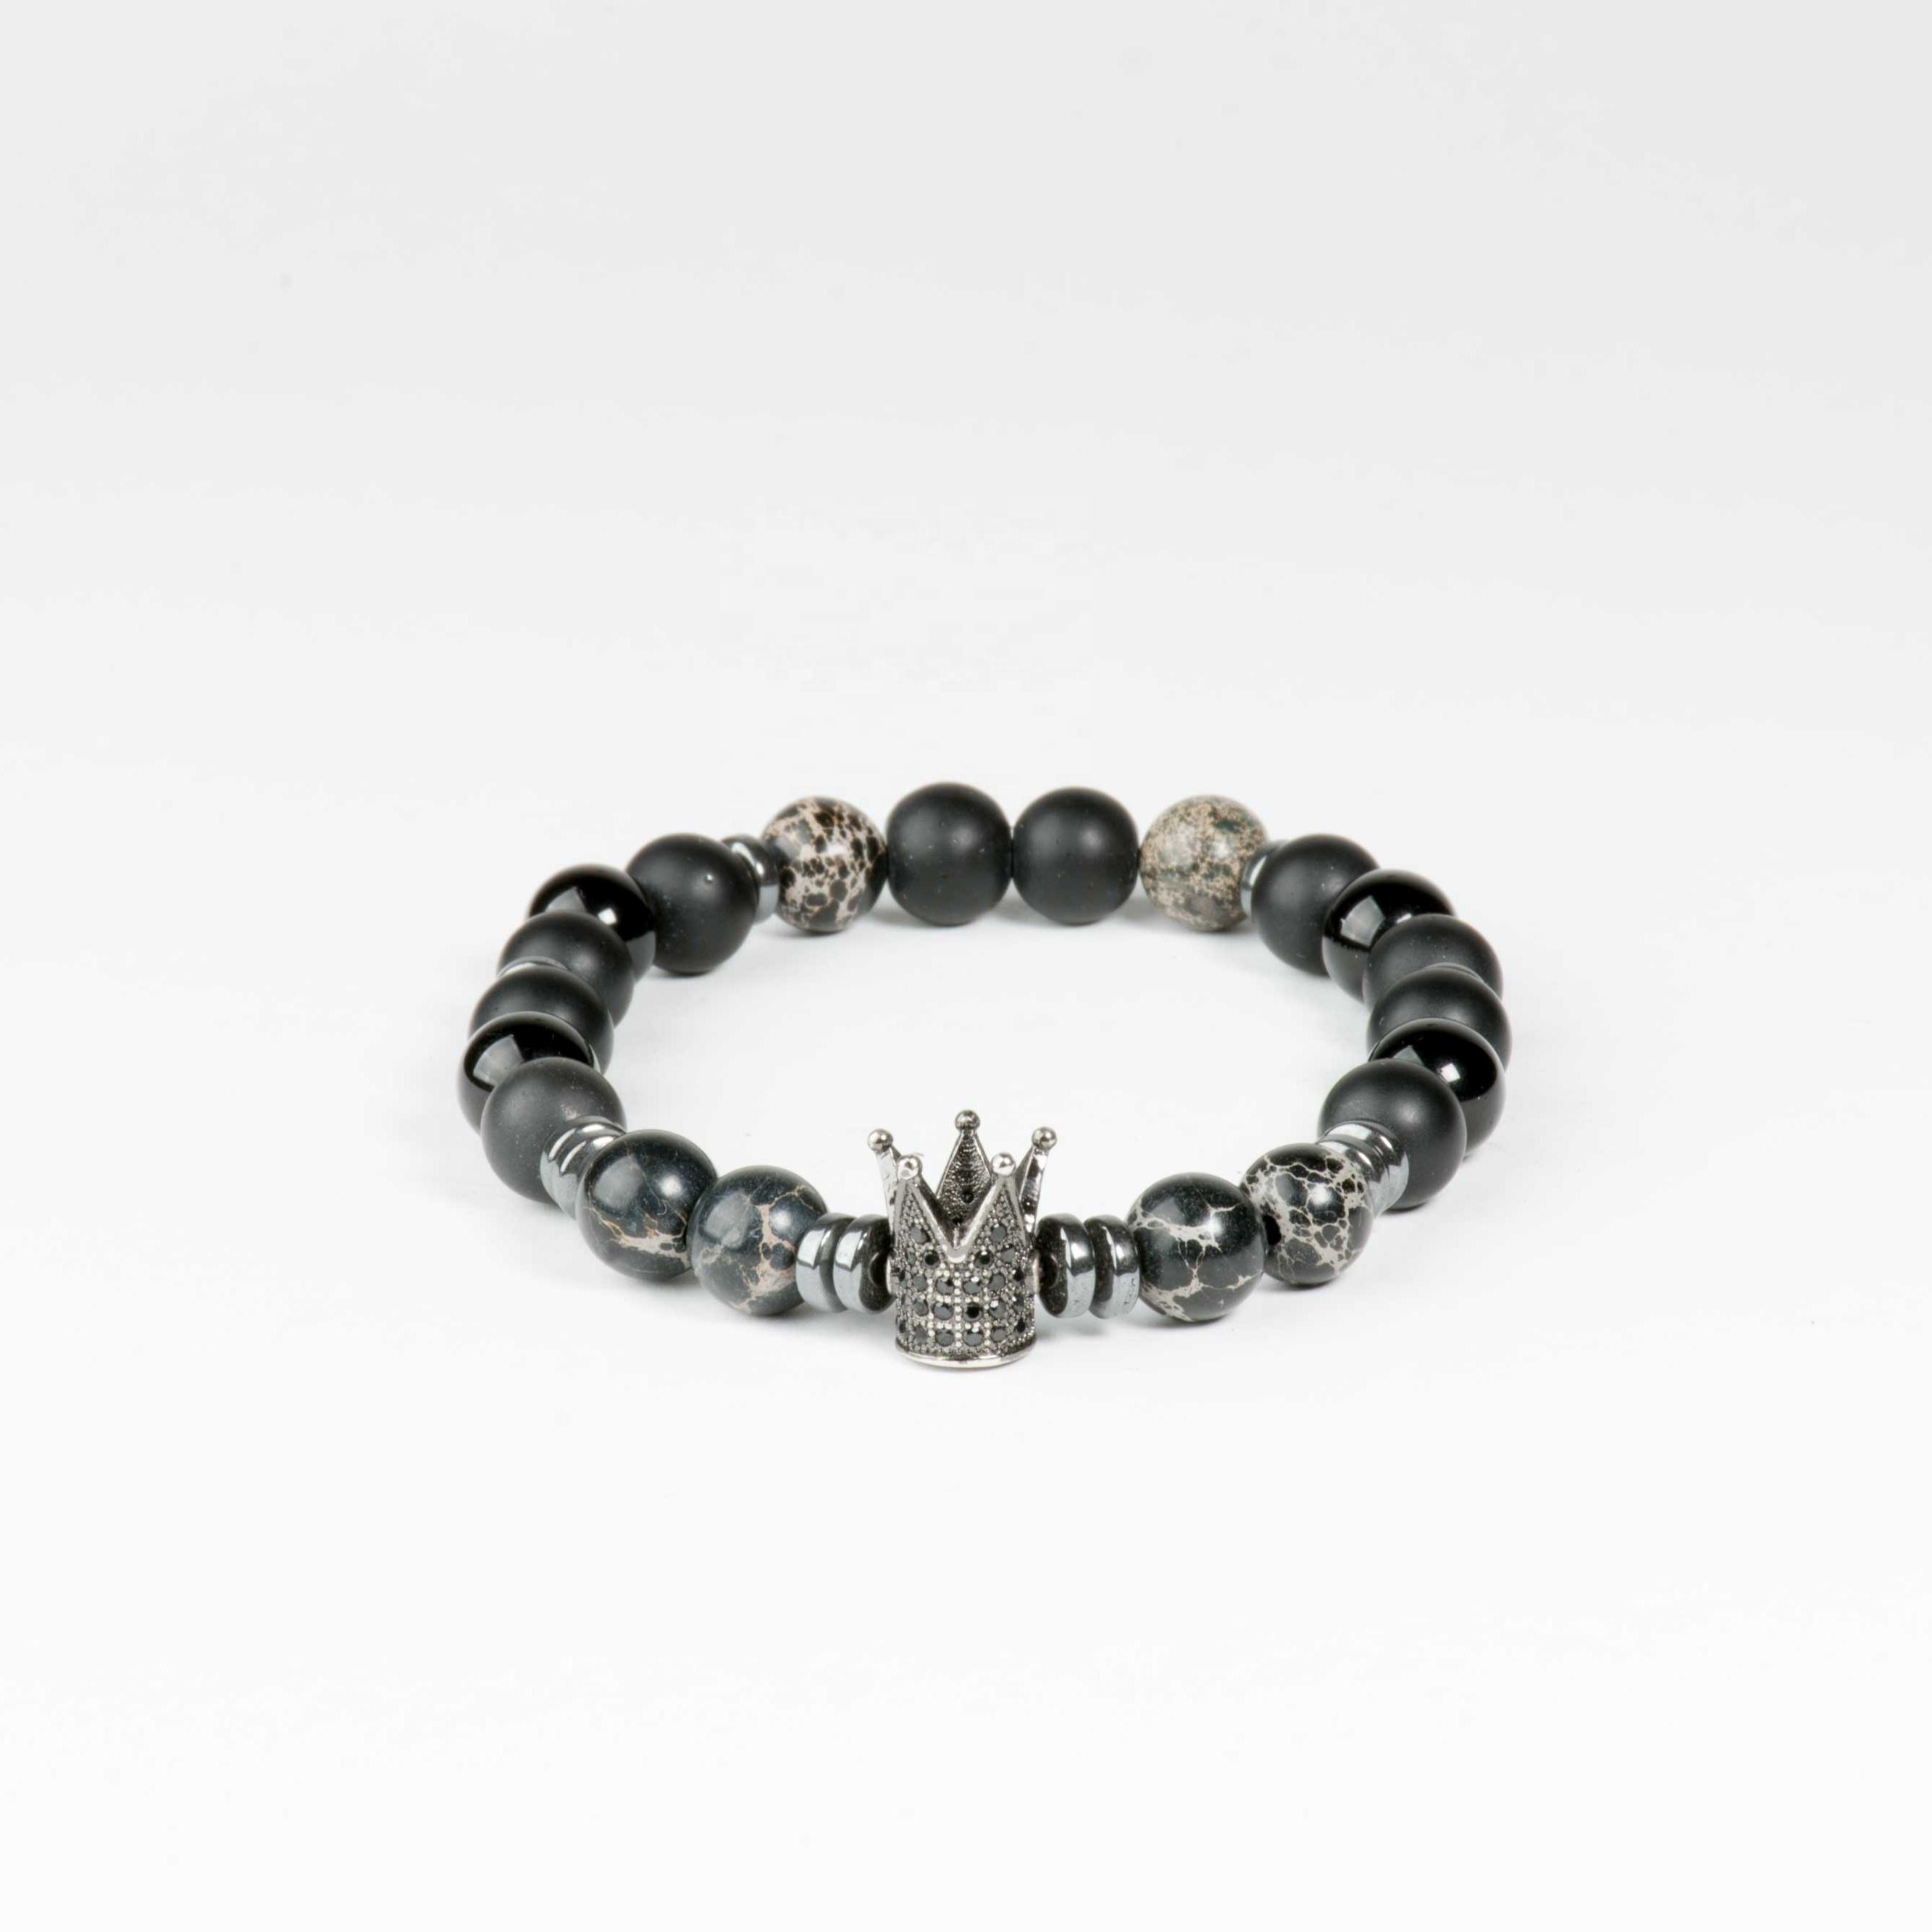 High Quality Best Price Stylish Black Agate and Onyx Zirconium King Crown Charm Beaded Bracelet